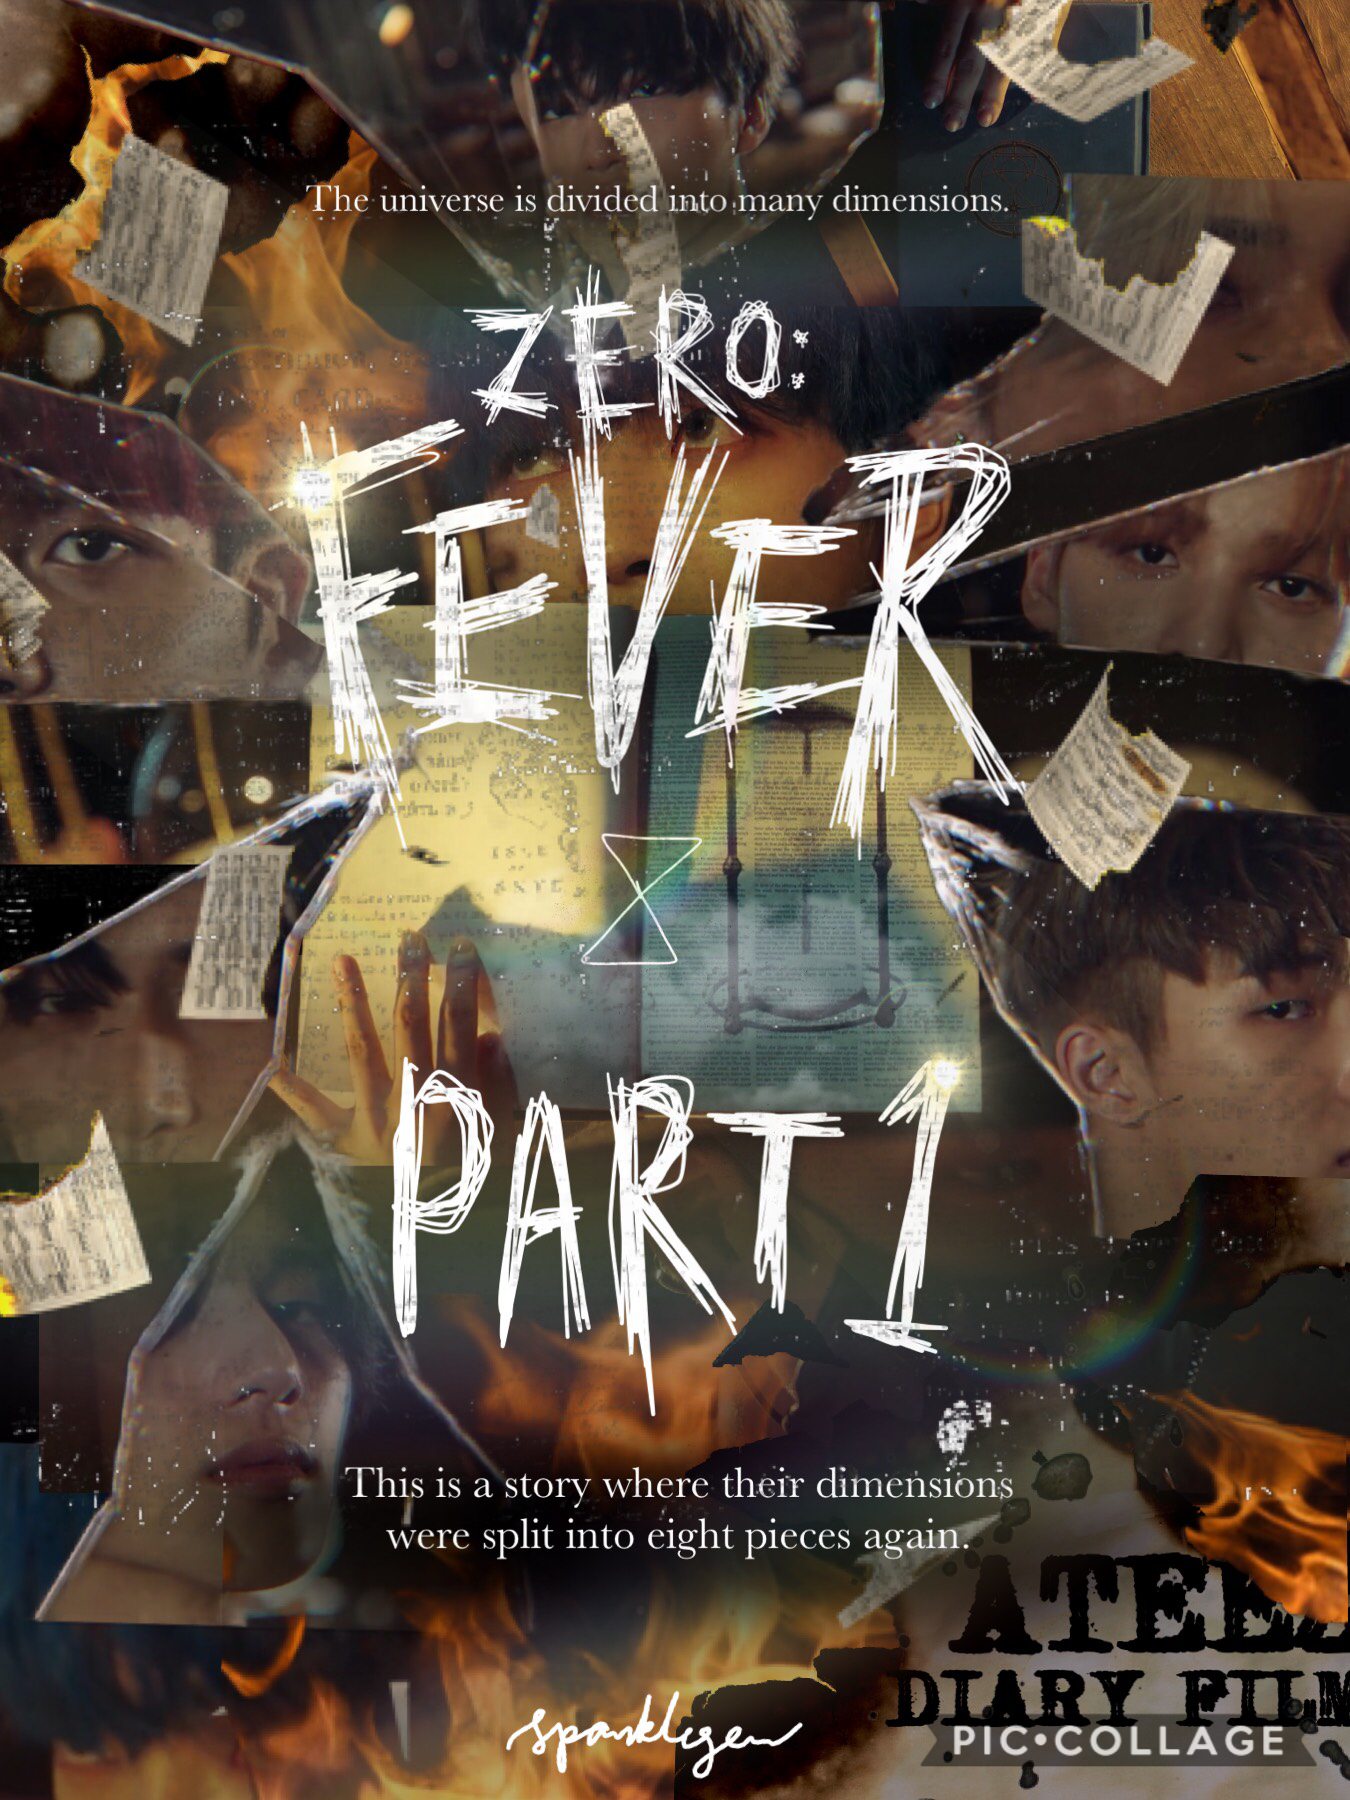 """[1/10] 🖤NEW THEME: ATEEZ's """"ZERO: FEVER PART 1: Diary Film"""" 🖤 I haven't done a theme since literally dec 2017 so i rlly hope i dont regret doing this to myself and i hope this doesn't flop🤡. Anyways enjoy the story (but it's gonna be  confusing haha...)"""